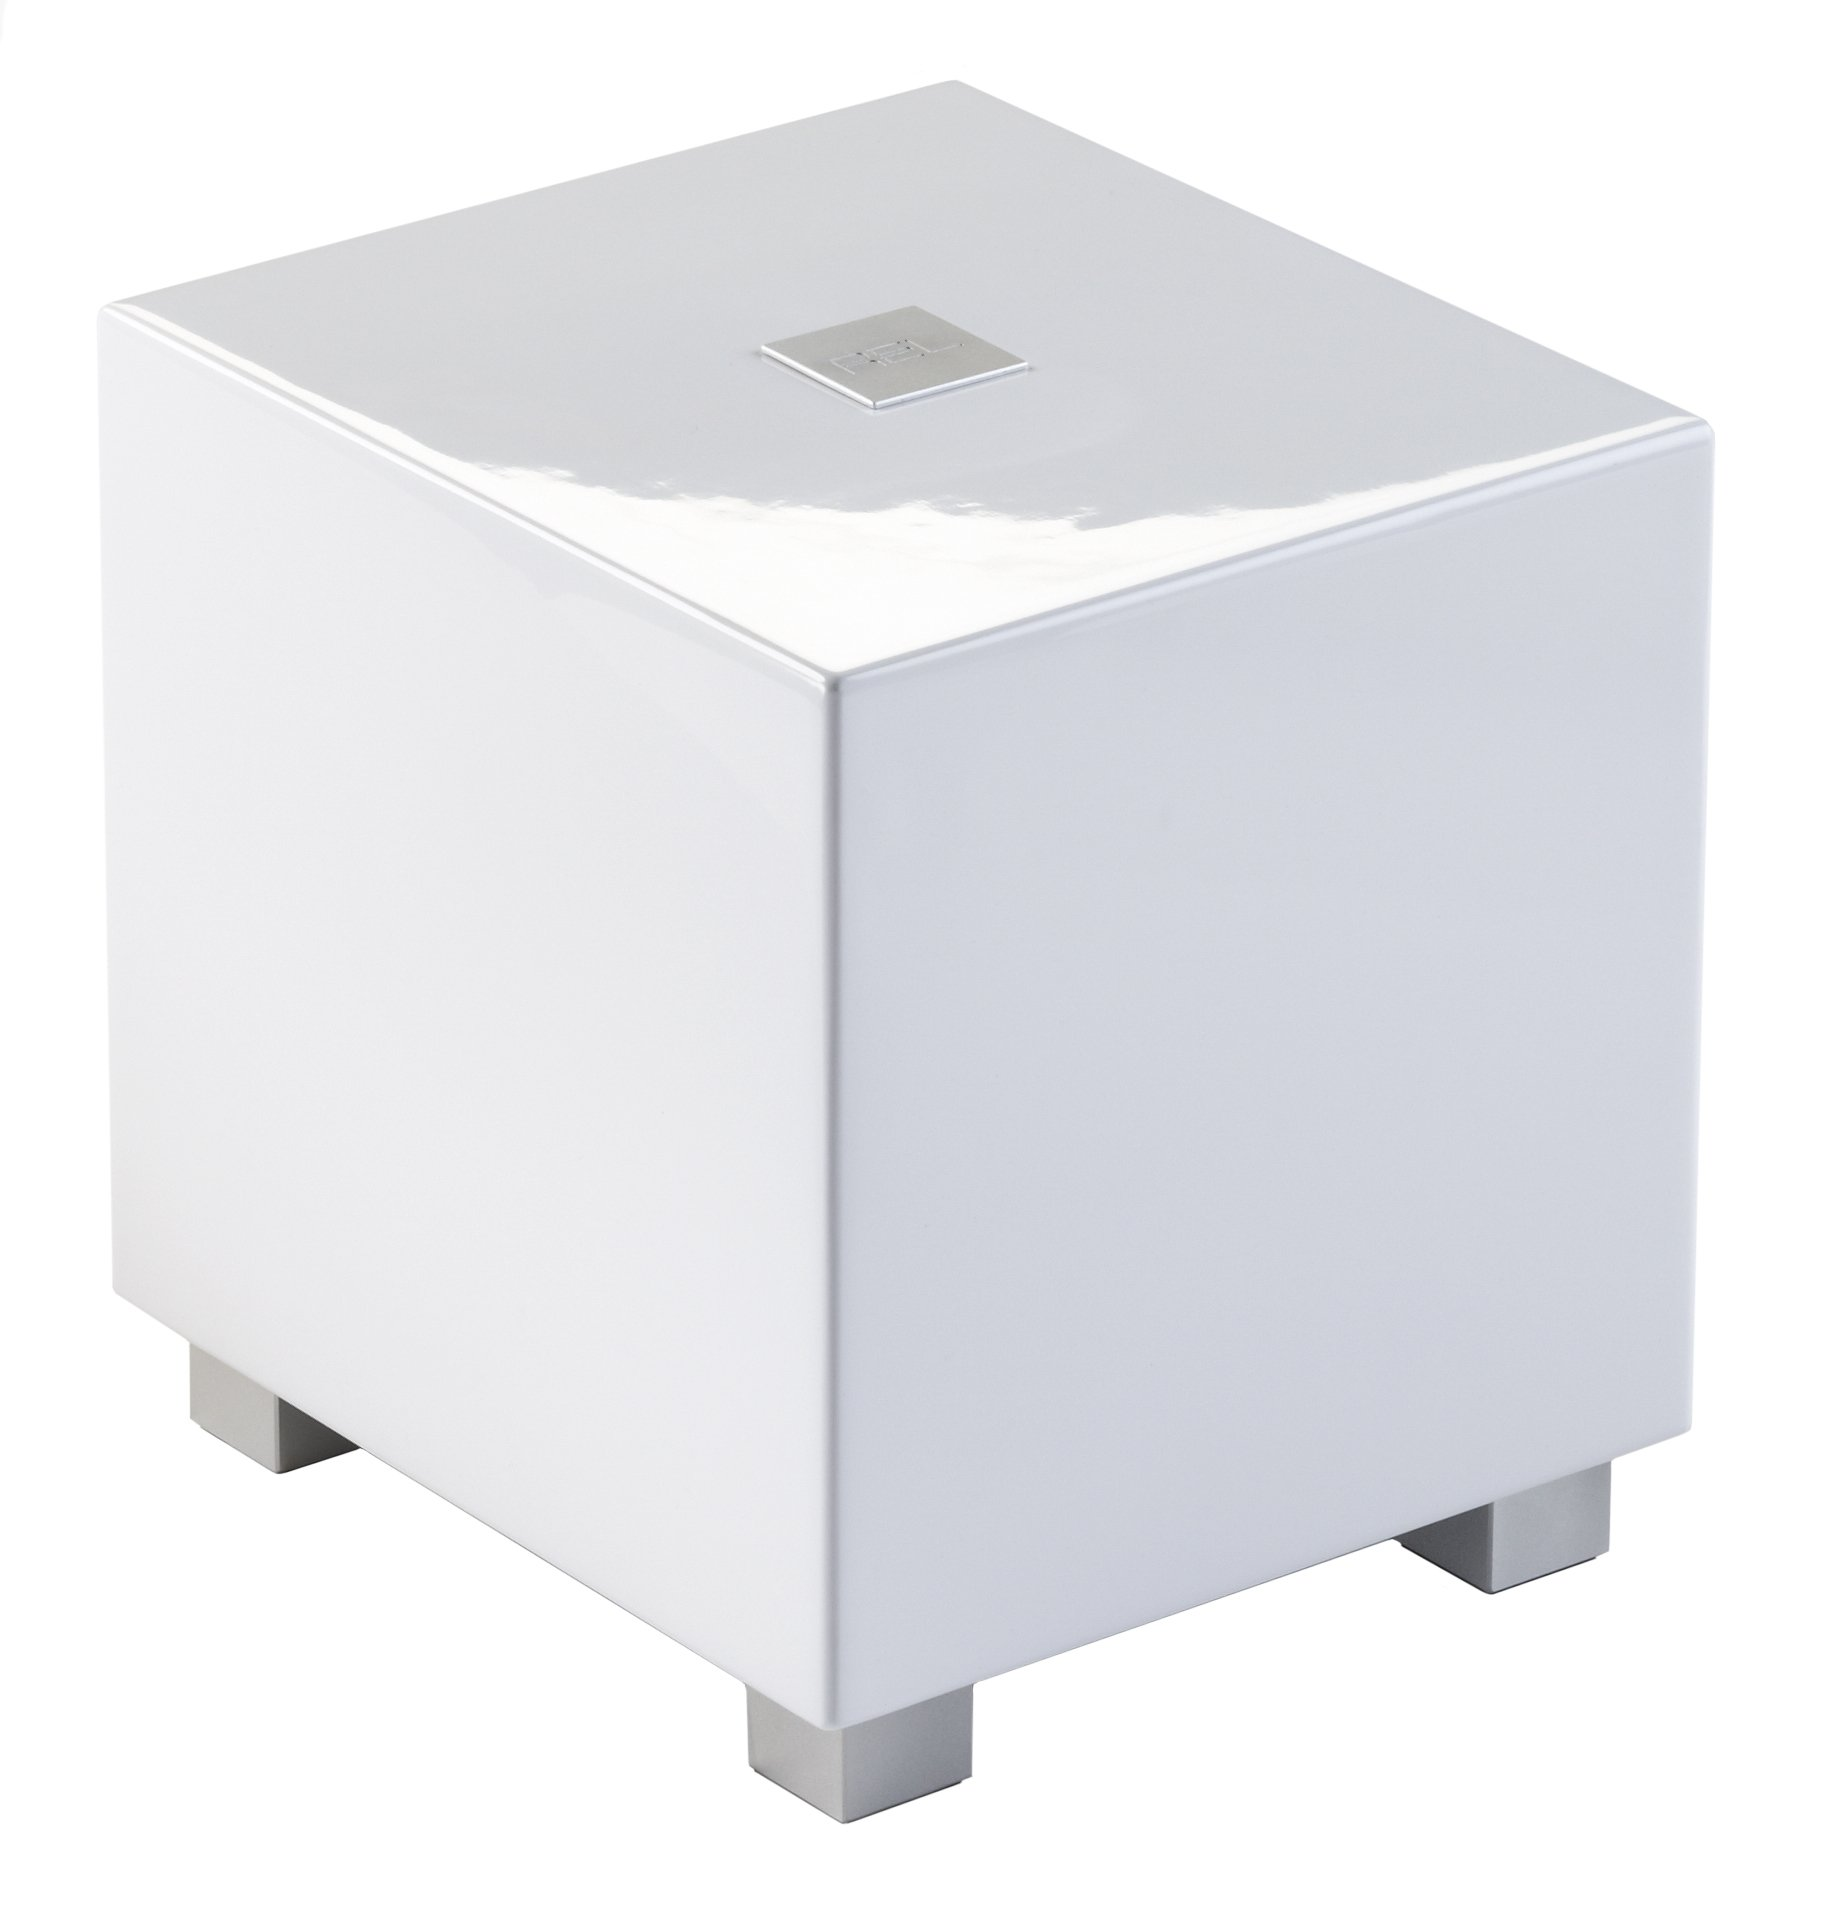 REL Acoustics T/Zero Subwoofer, 6.5 inch Down-Firing Driver, High Gloss White